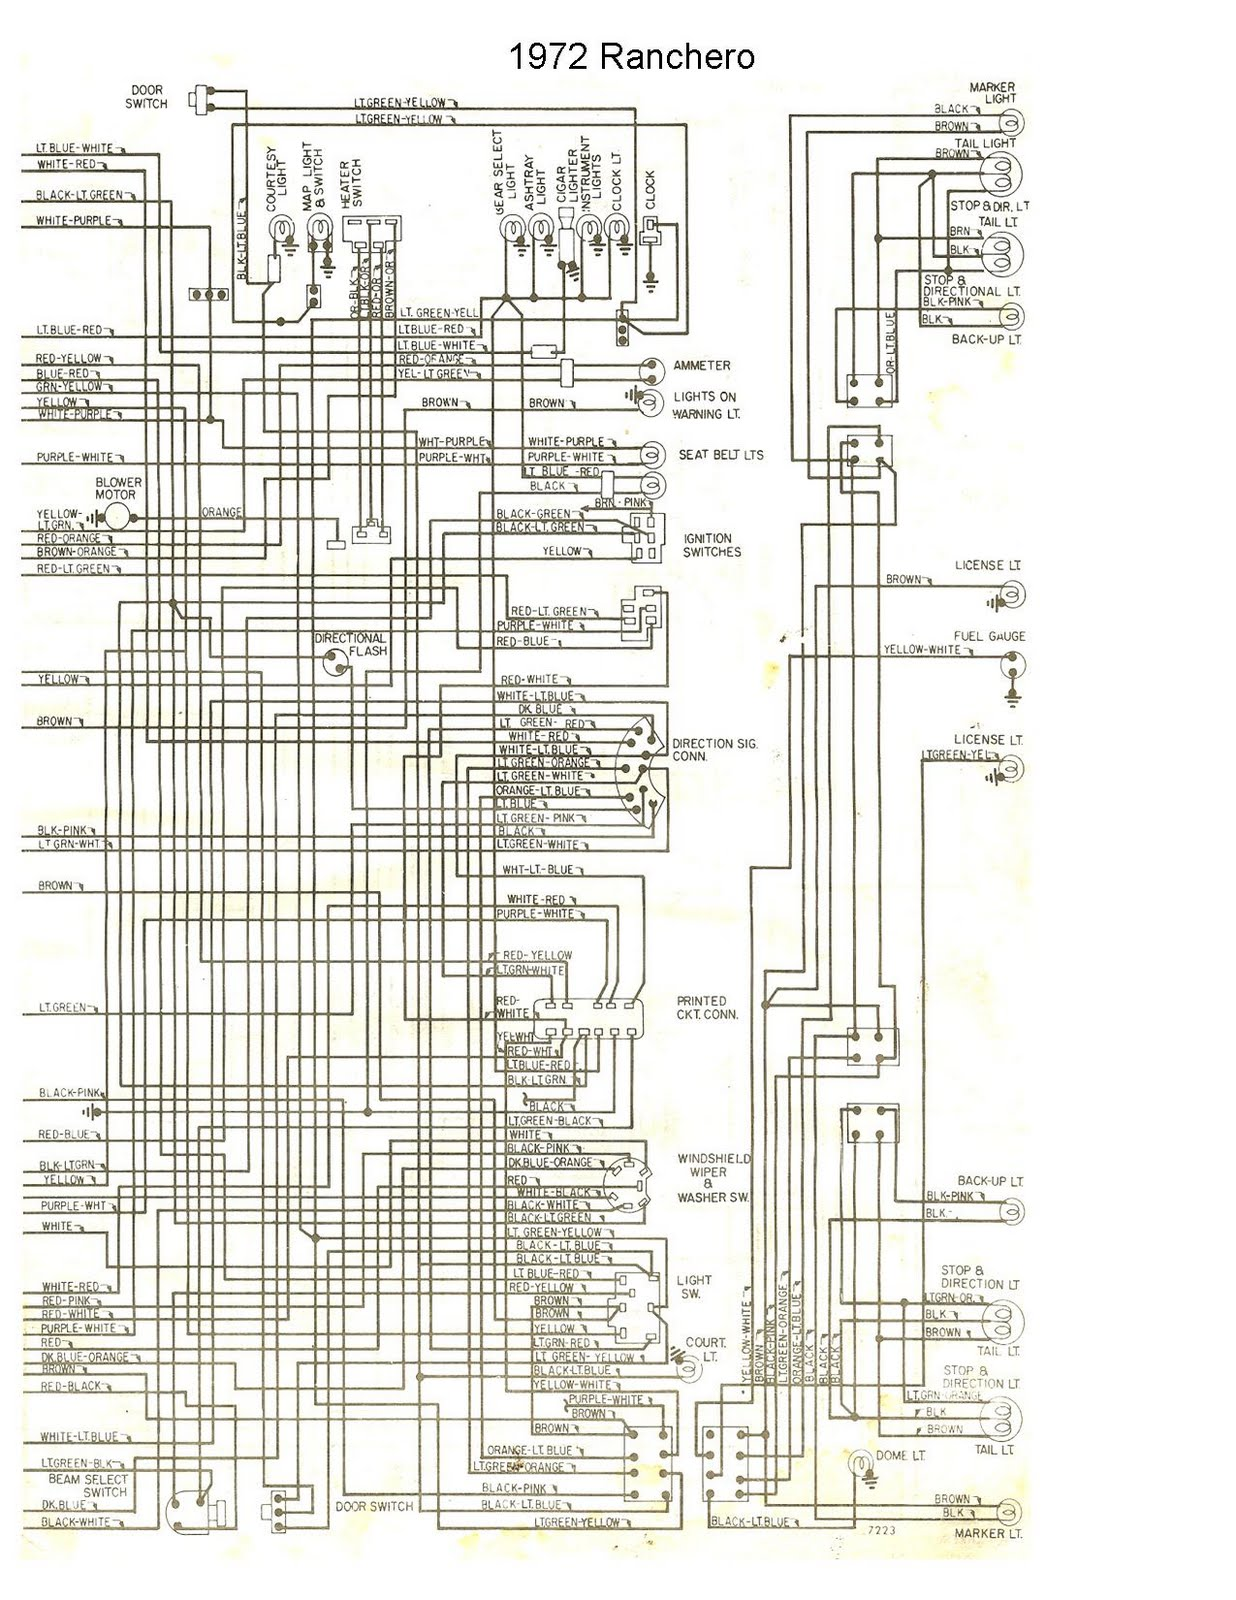 wiring schematic diagram ford ranchero 1972 free auto wiring diagram 1972 ford ranchero wiring diagram free wiring diagrams ford at reclaimingppi.co